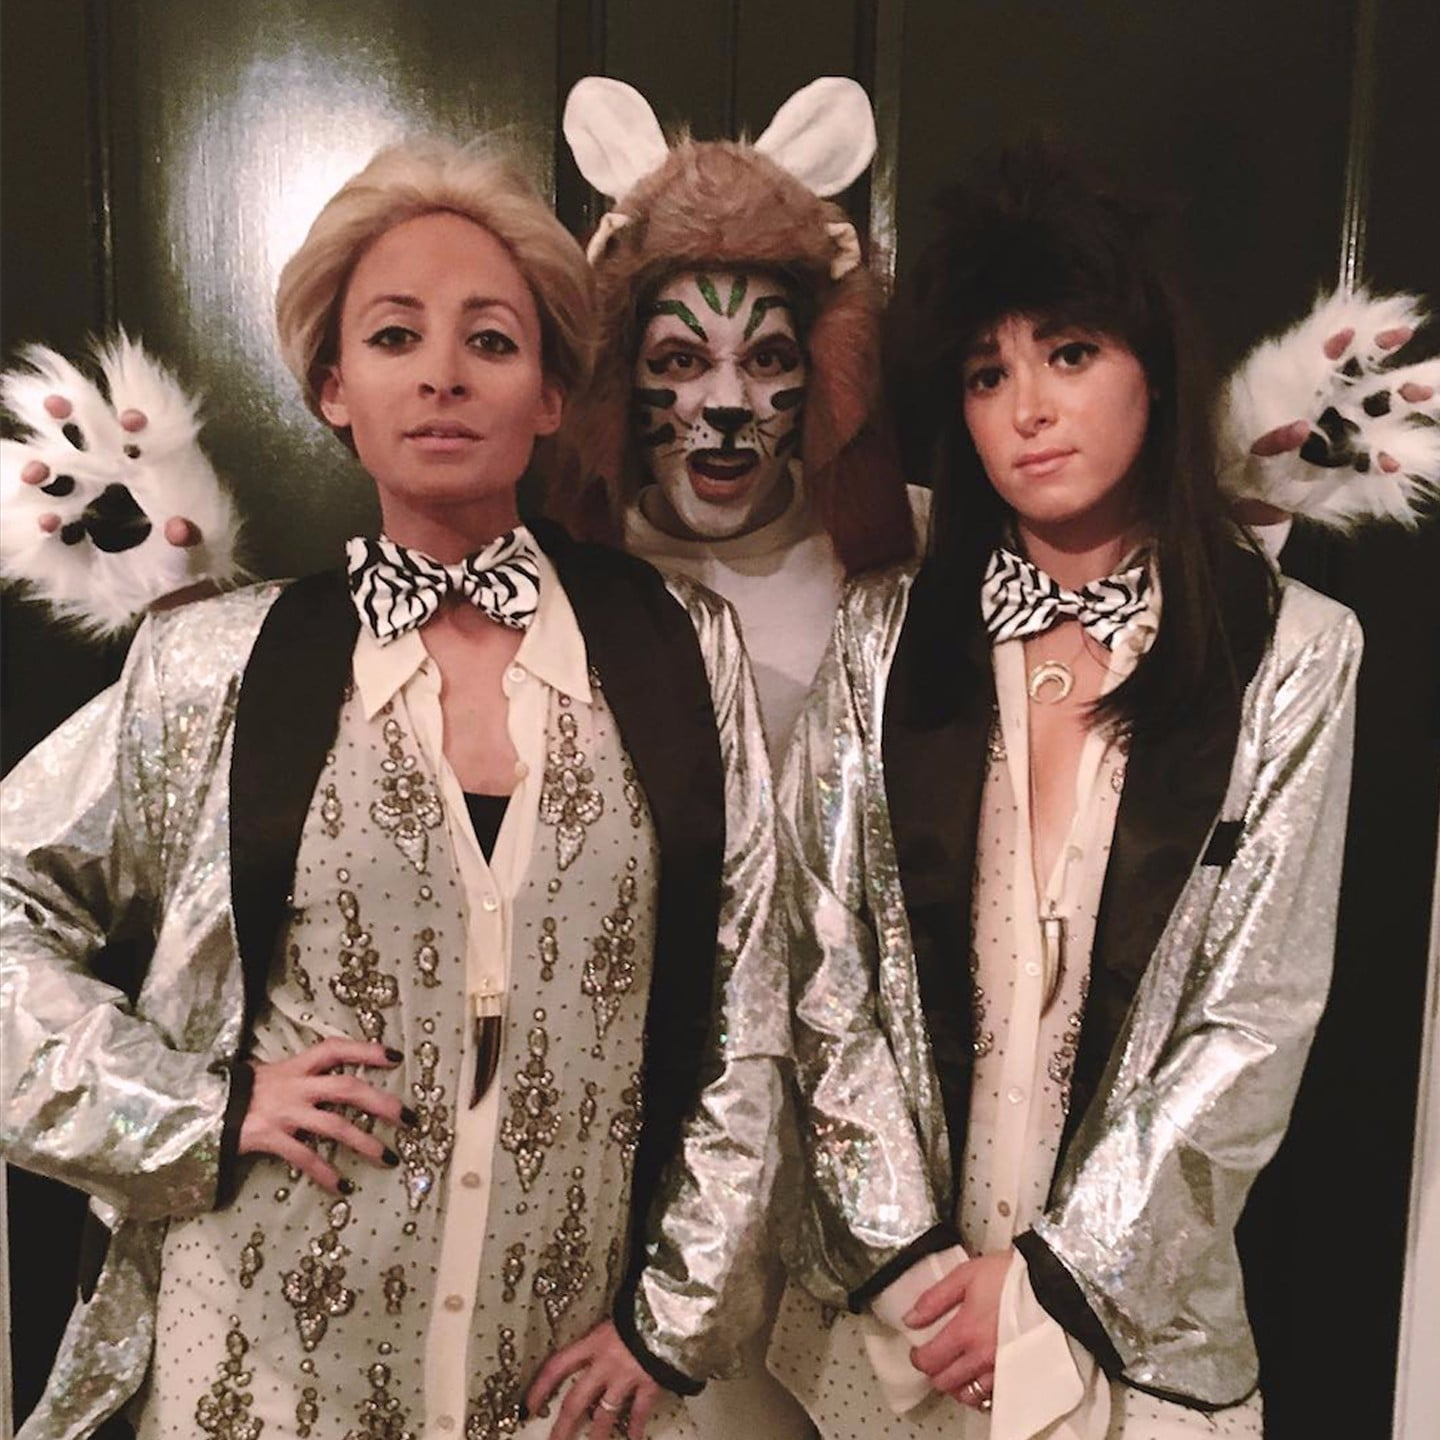 Siegfried and roy costumes sexy